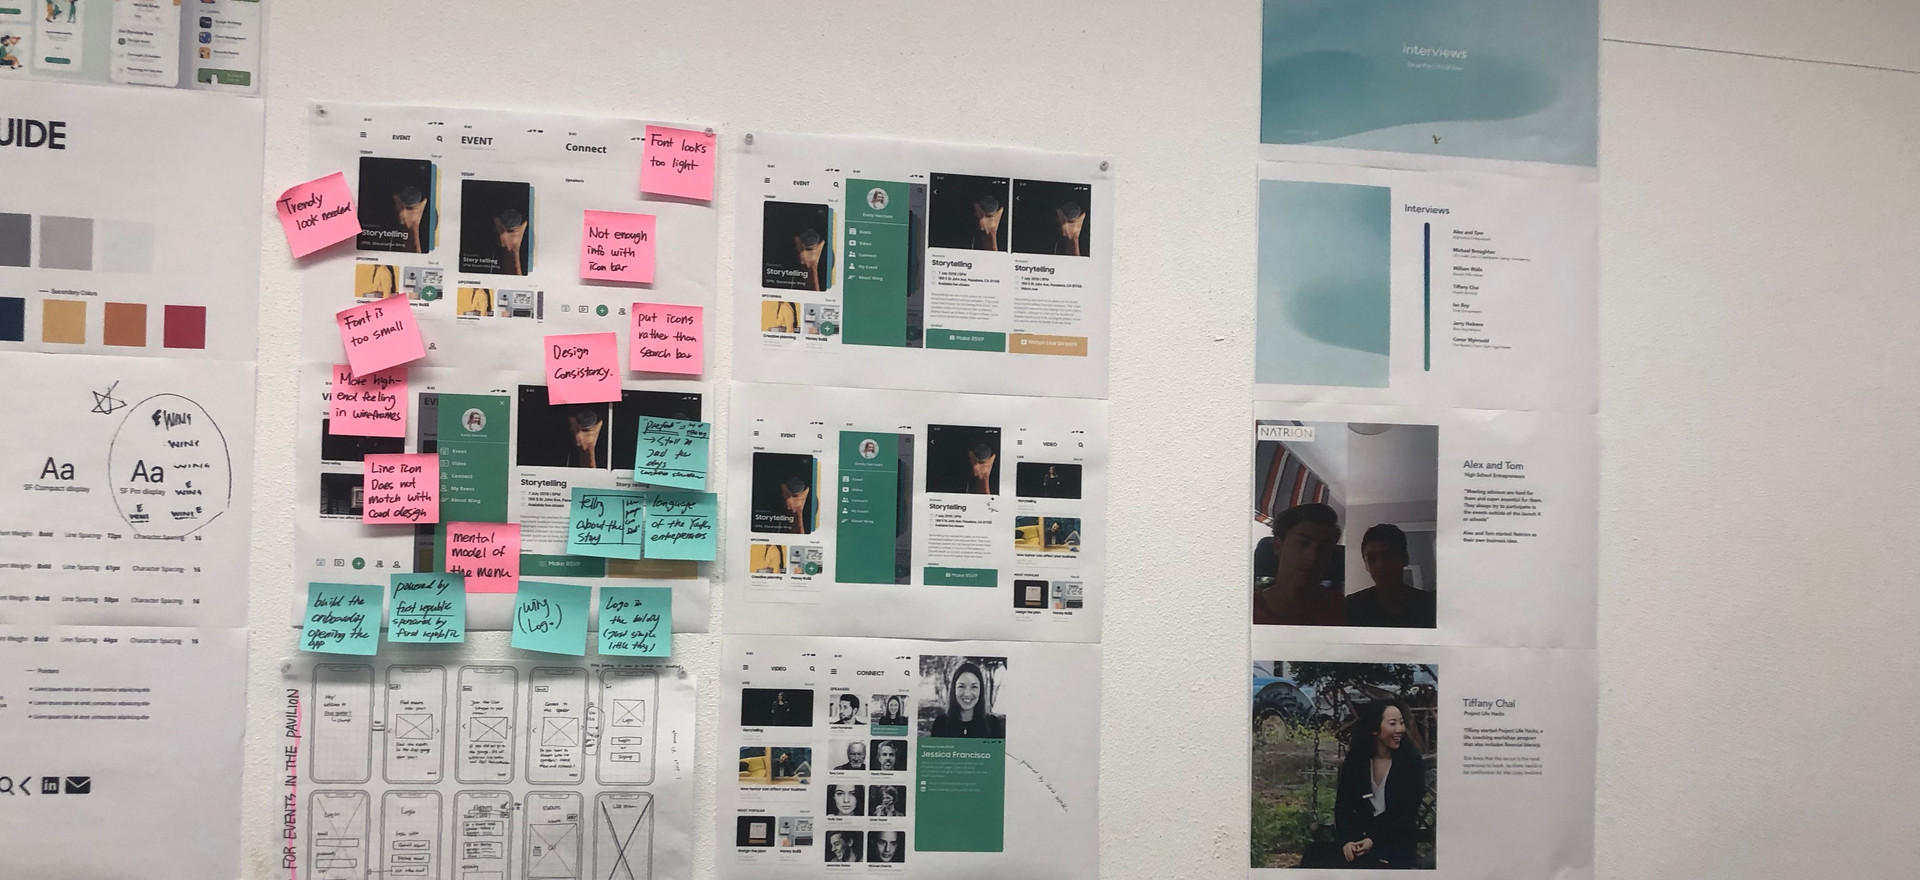 Wireframes and App Design